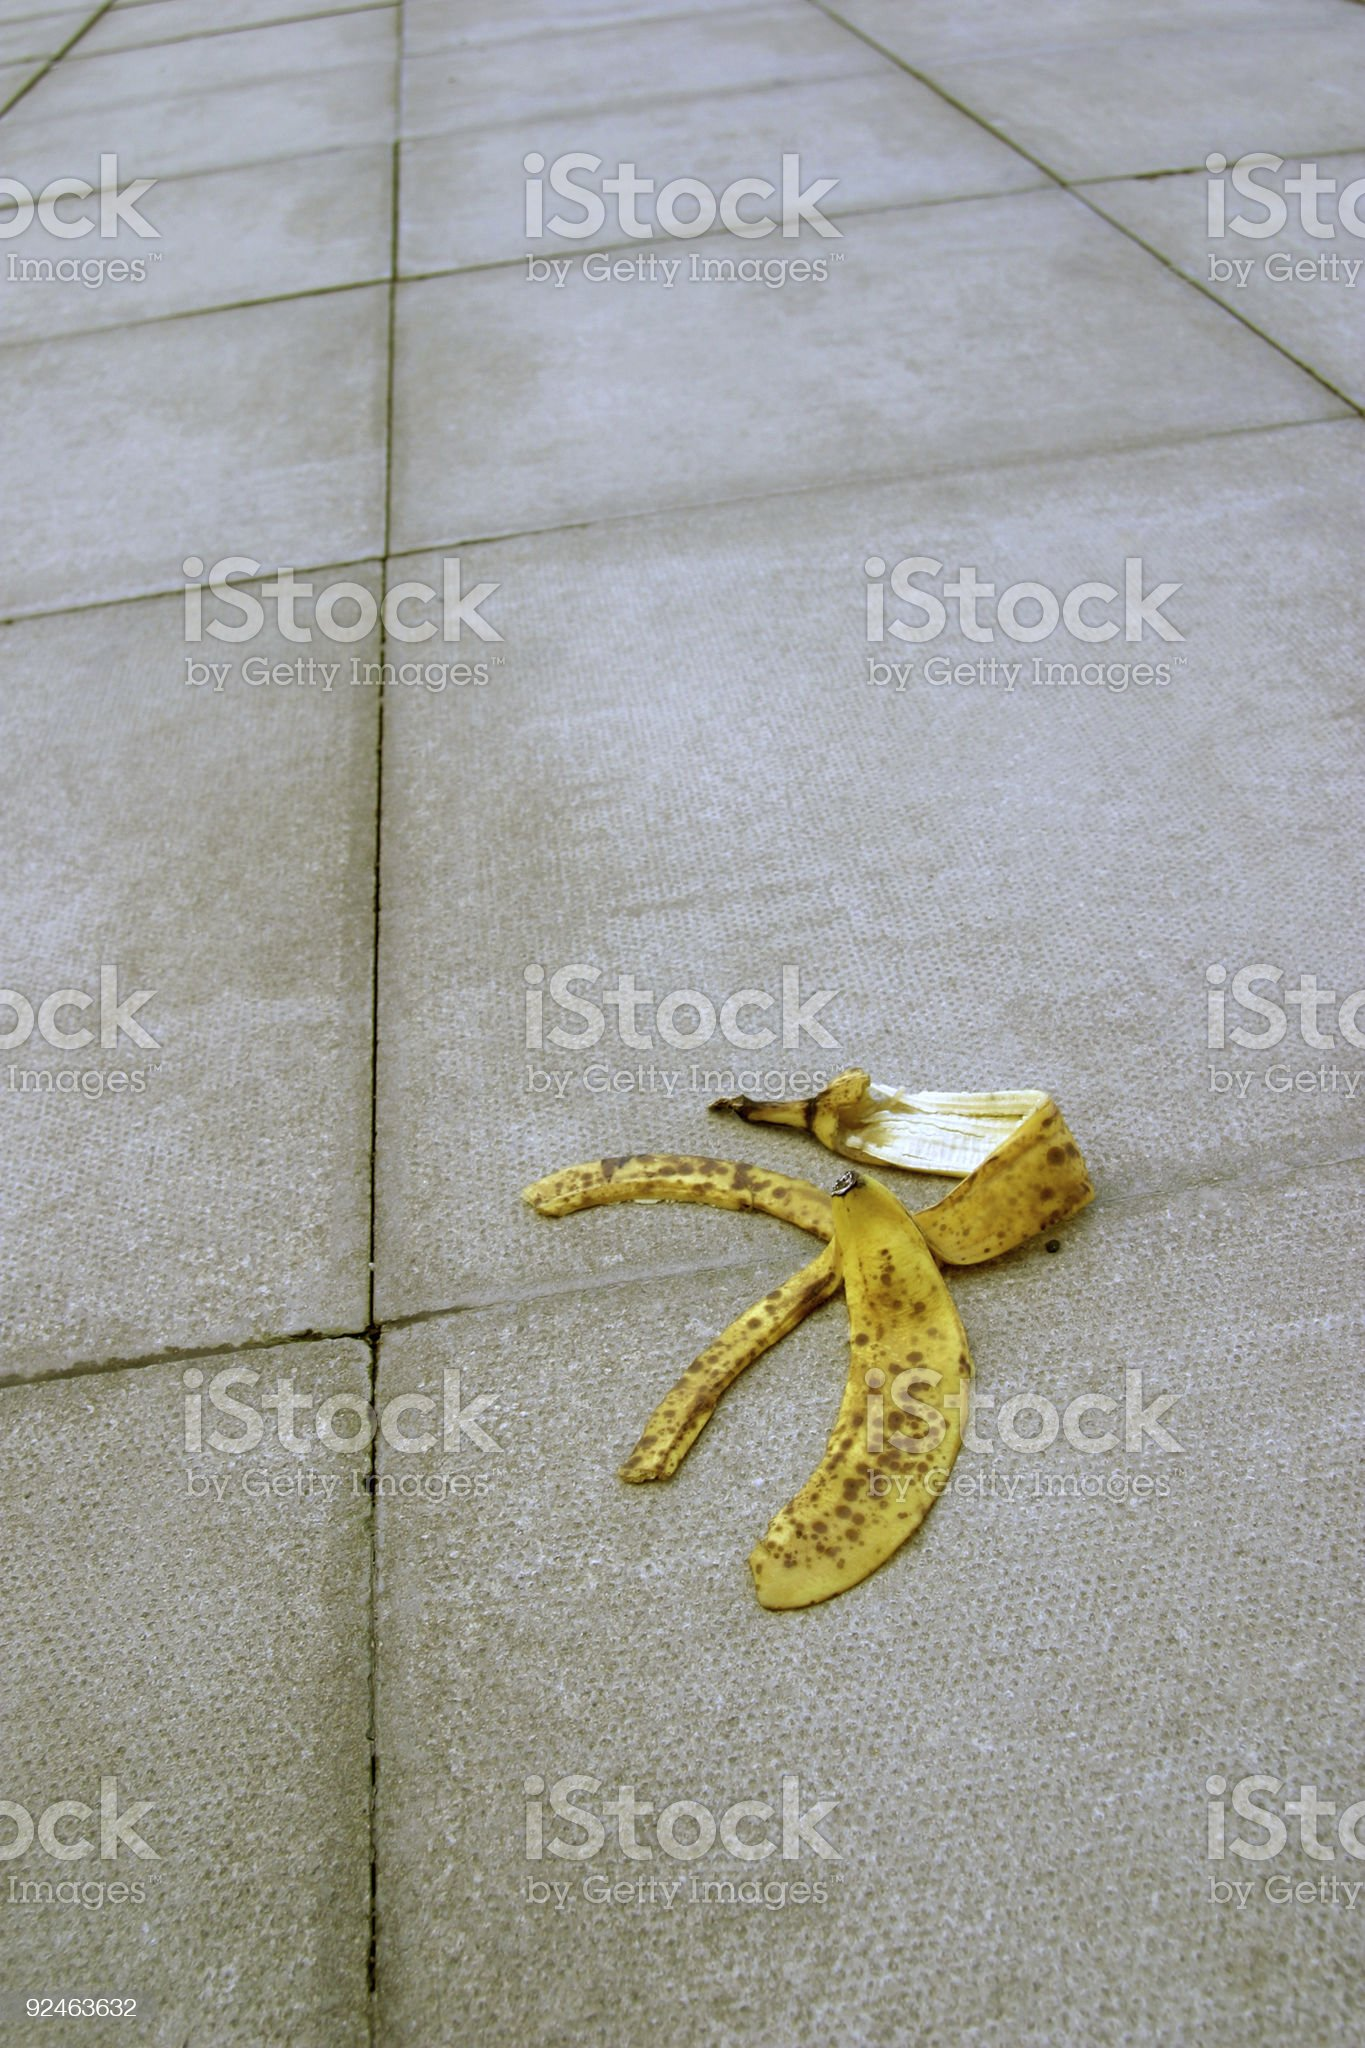 Heading for a fall royalty-free stock photo